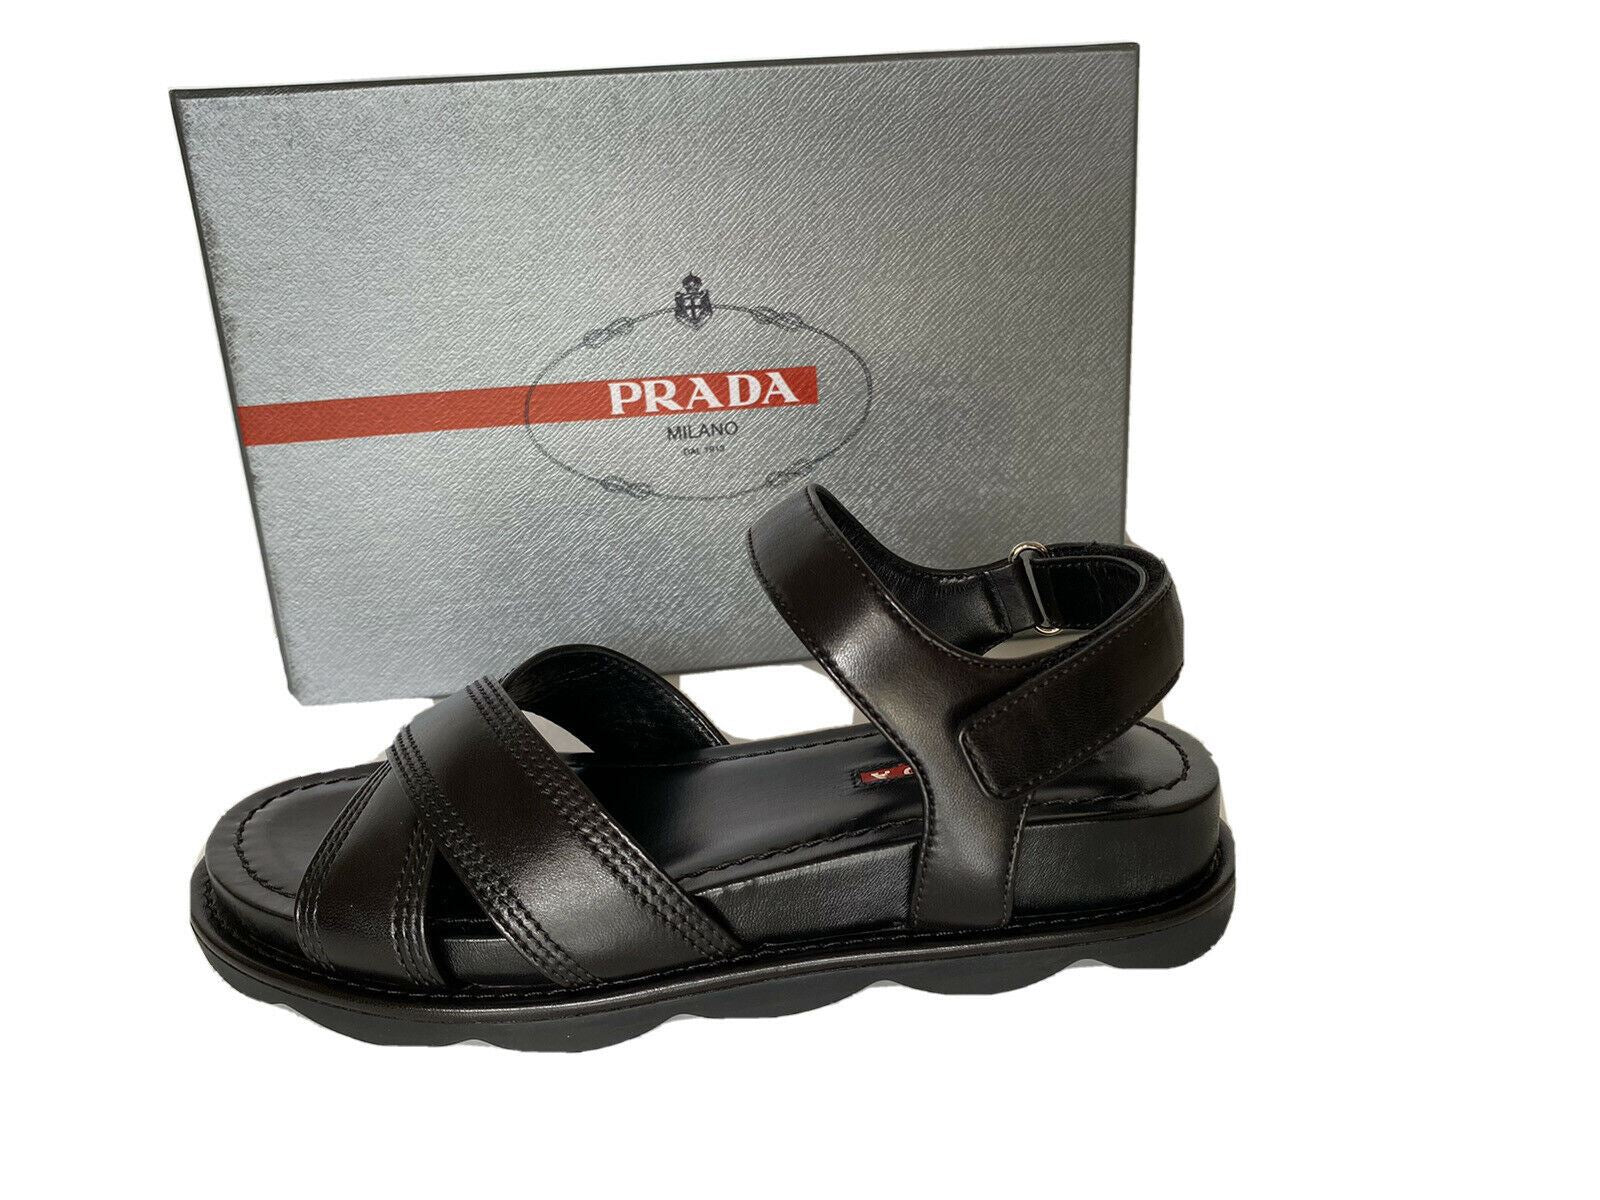 NIB $560 PRADA Women's Black Open Toe Leather Sandals 6.5 US (36.5 Euro) 3X6289